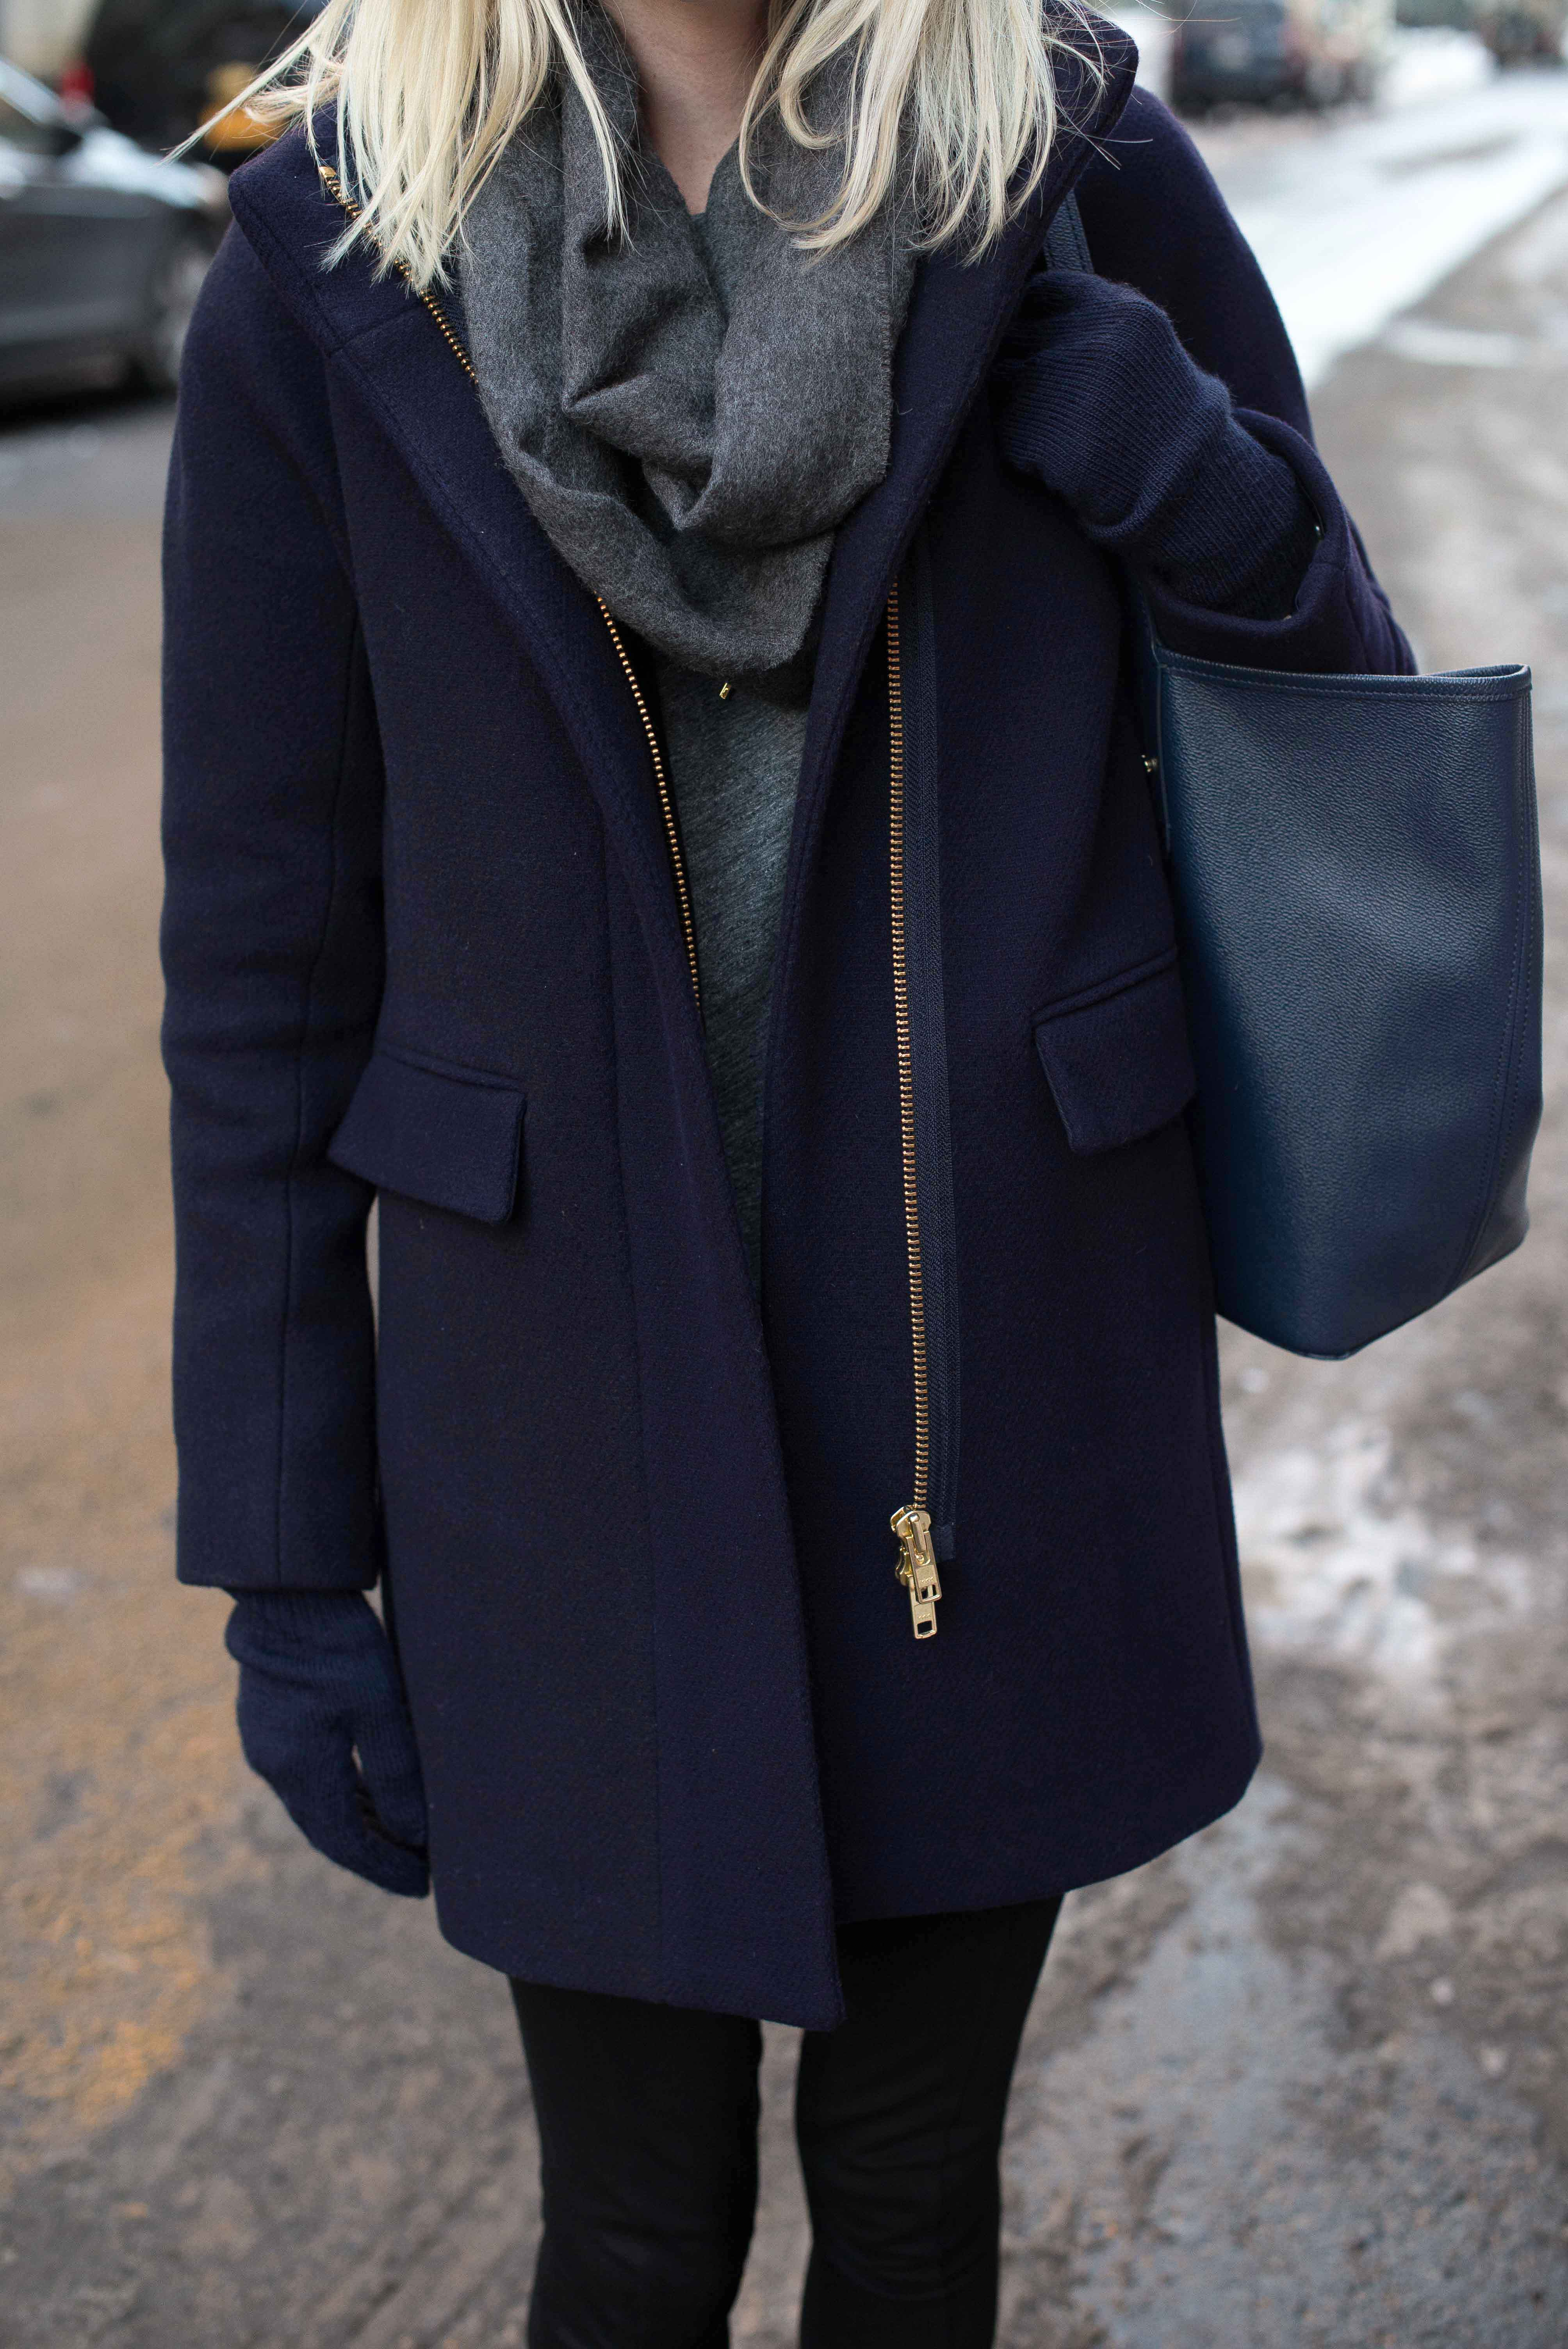 Shop for navy pea coat online at Target. Free shipping on purchases over $35 and save 5% every day with your Target REDcard.